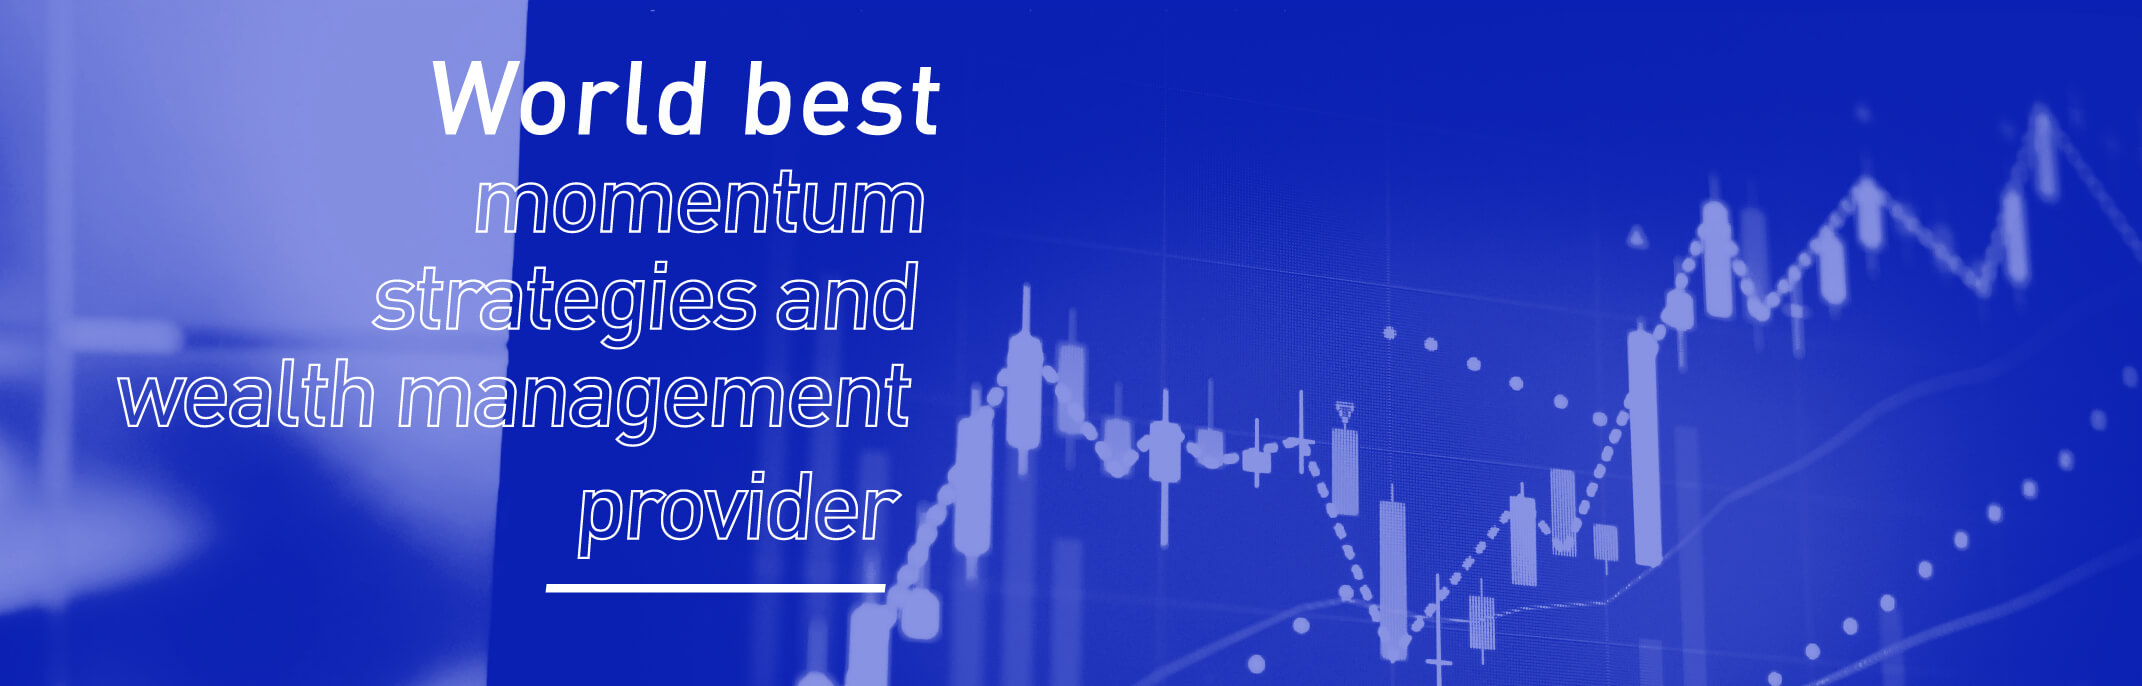 World #1 in price pattern matching and wealth management